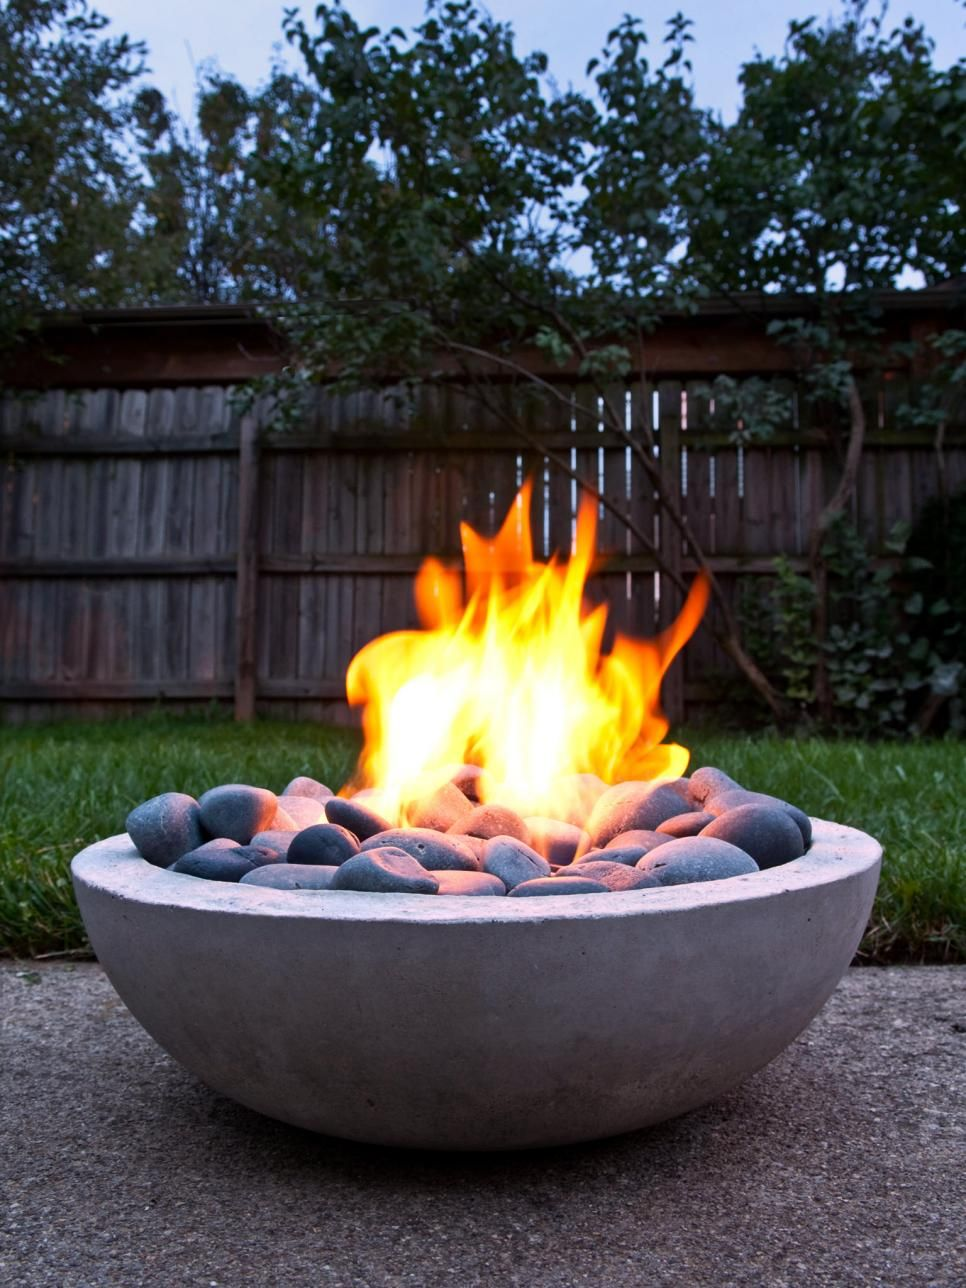 These Small Space Friendly Fire Pits And Water Fountains Will Add Big Style And Tranquil Vibes To Even The Tiniest O Diy Garden Projects Backyard Fire Fire Pit